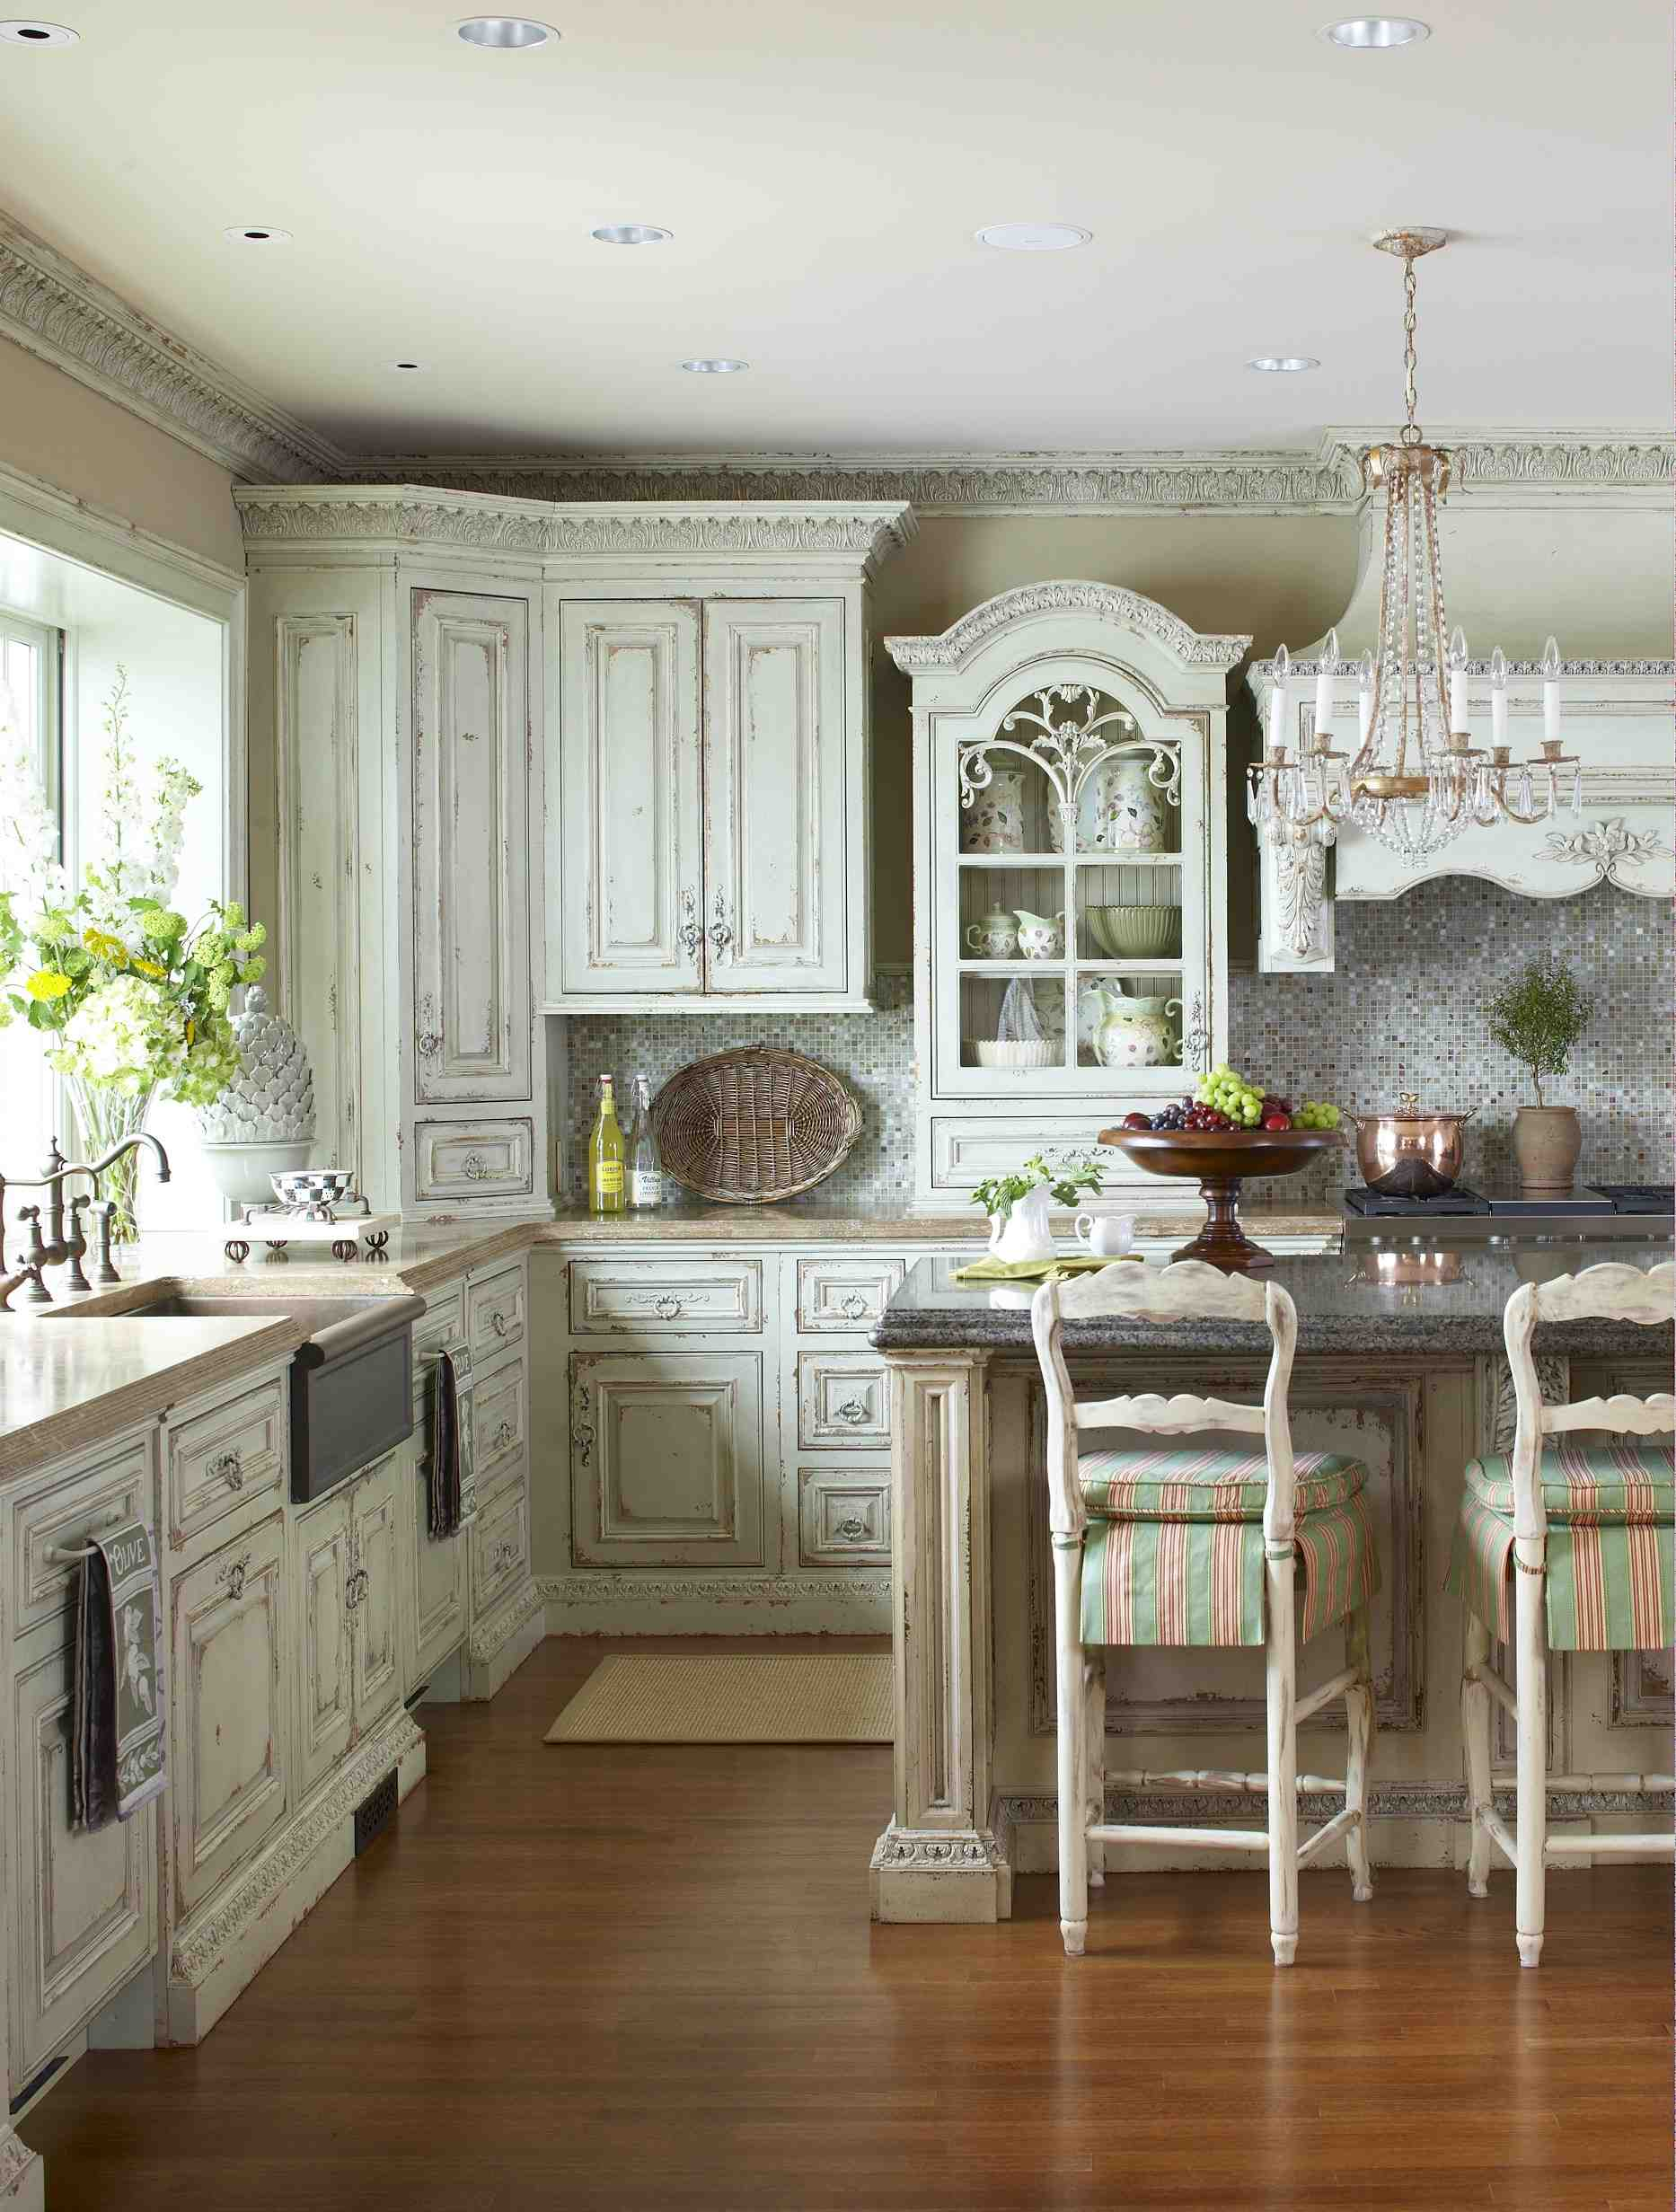 My Favorite Kitchens of 2010 | stacystyle's blog on Beautiful Kitchen  id=15383